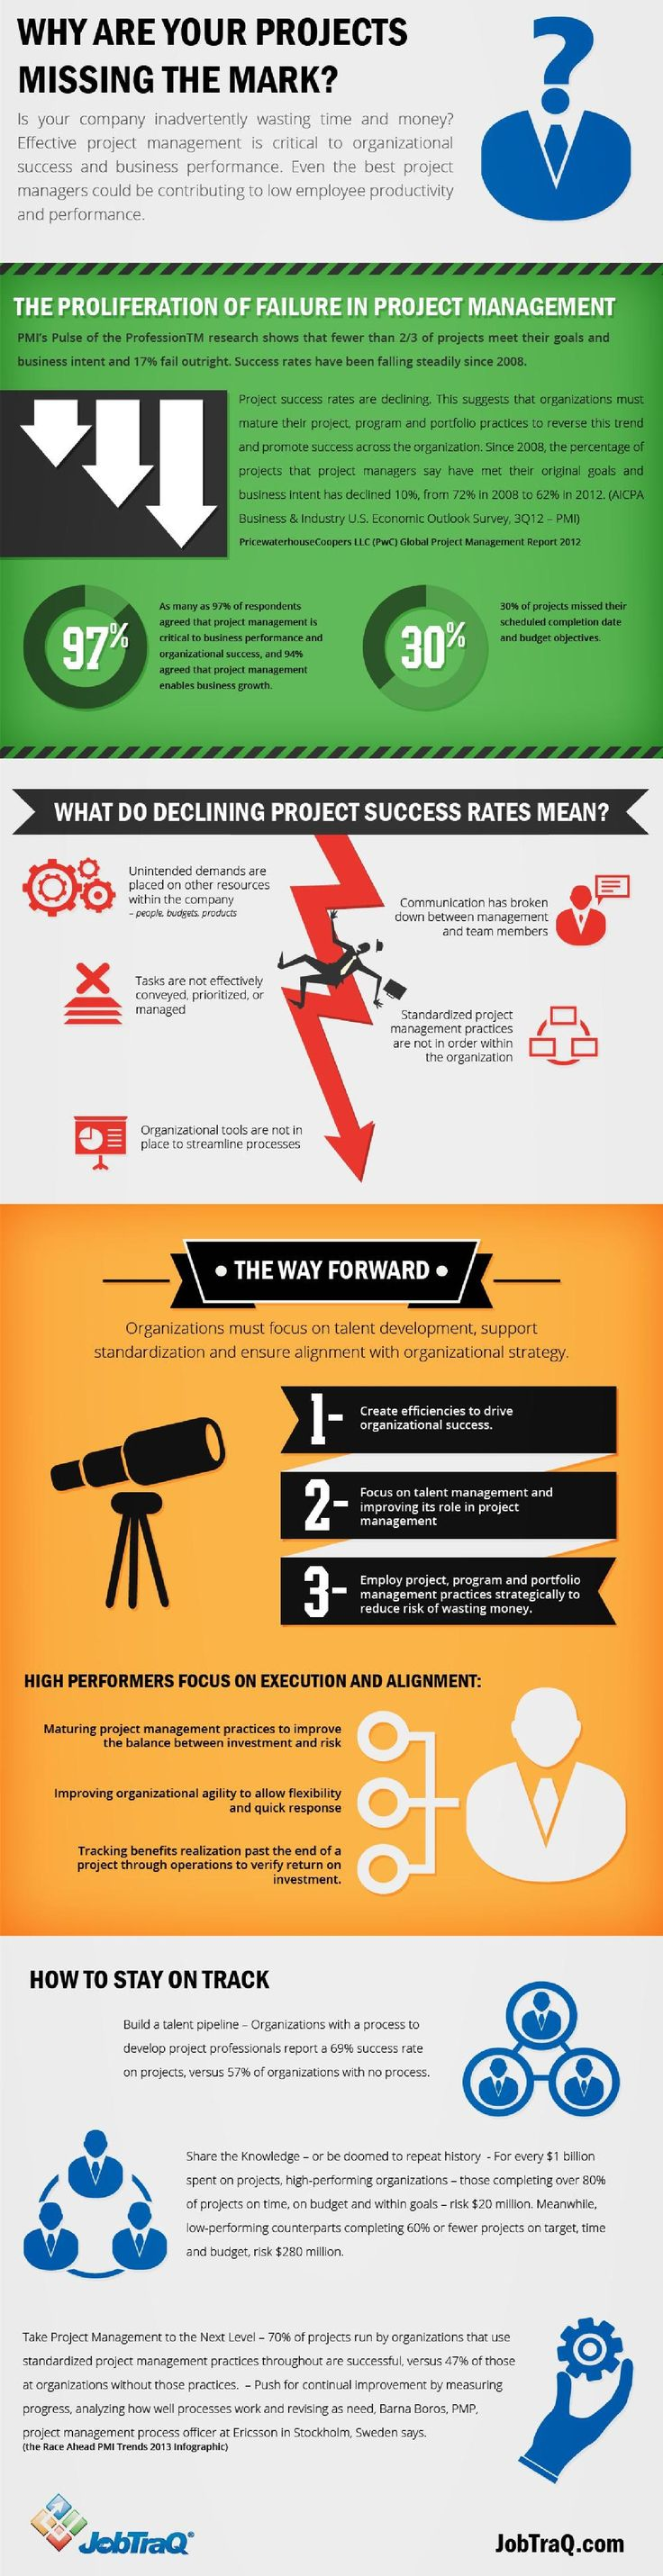 Why are Your Projects Missing the Mark?   #infographic #projectManager #Management